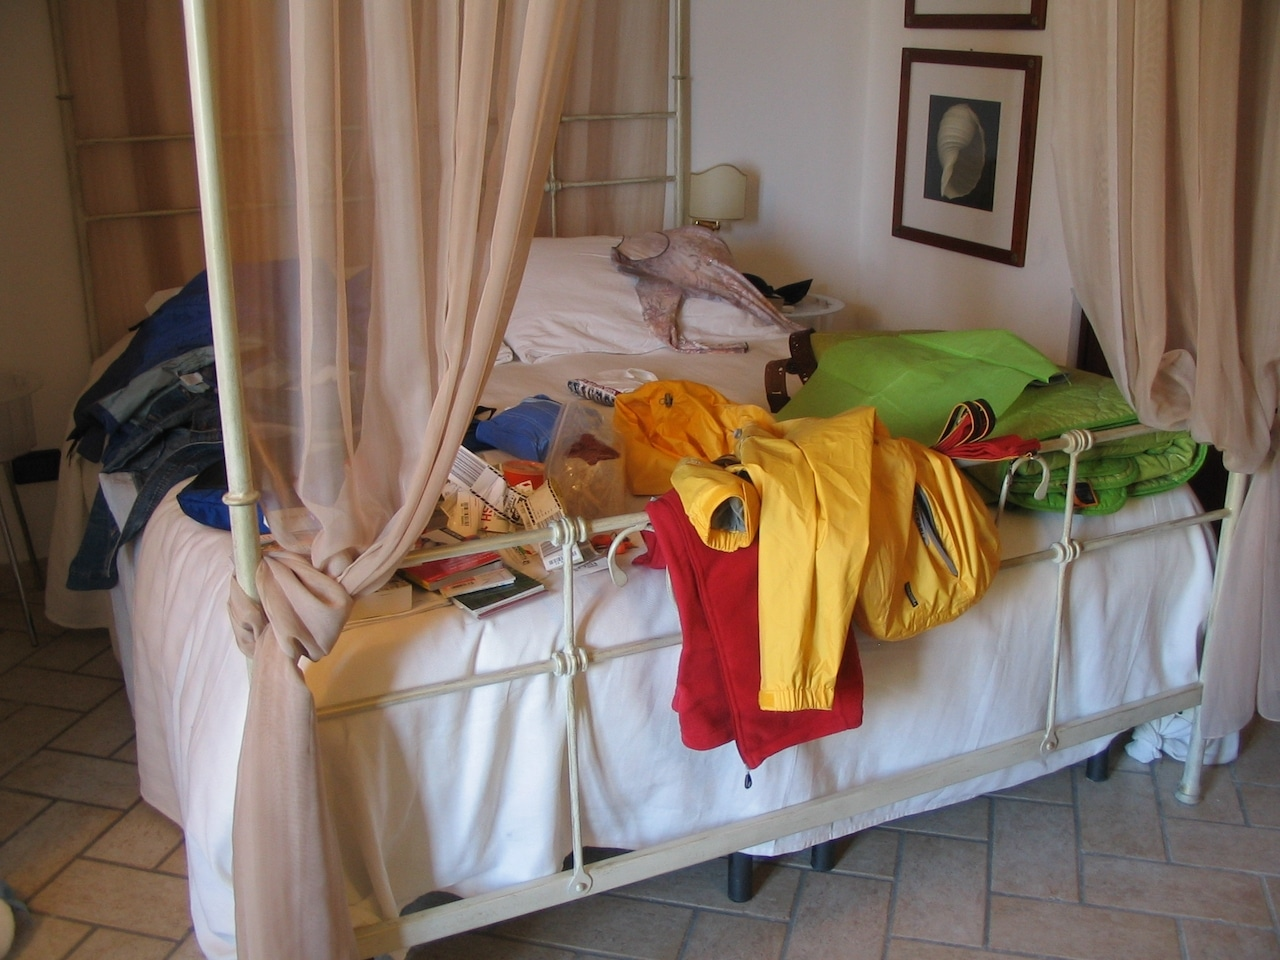 An array of colorful clothes scattered on a bed.